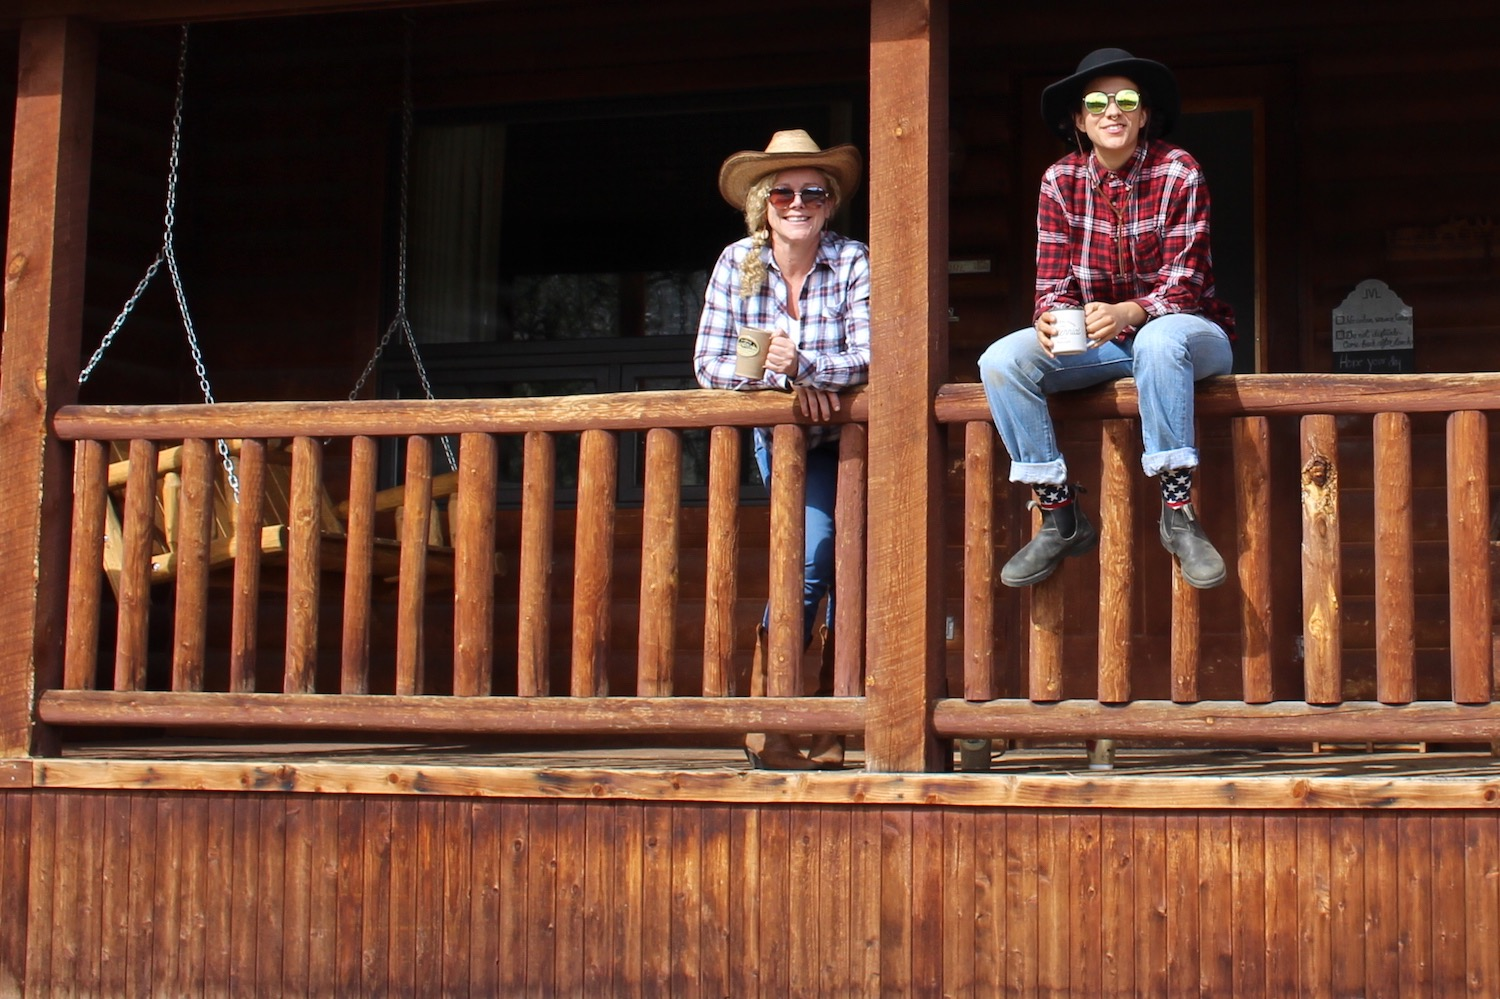 Connecting with my daughter, Sam, at Lost Valley Ranch in Colorado where we learned how to horseback ride, trap shoot and square dance.